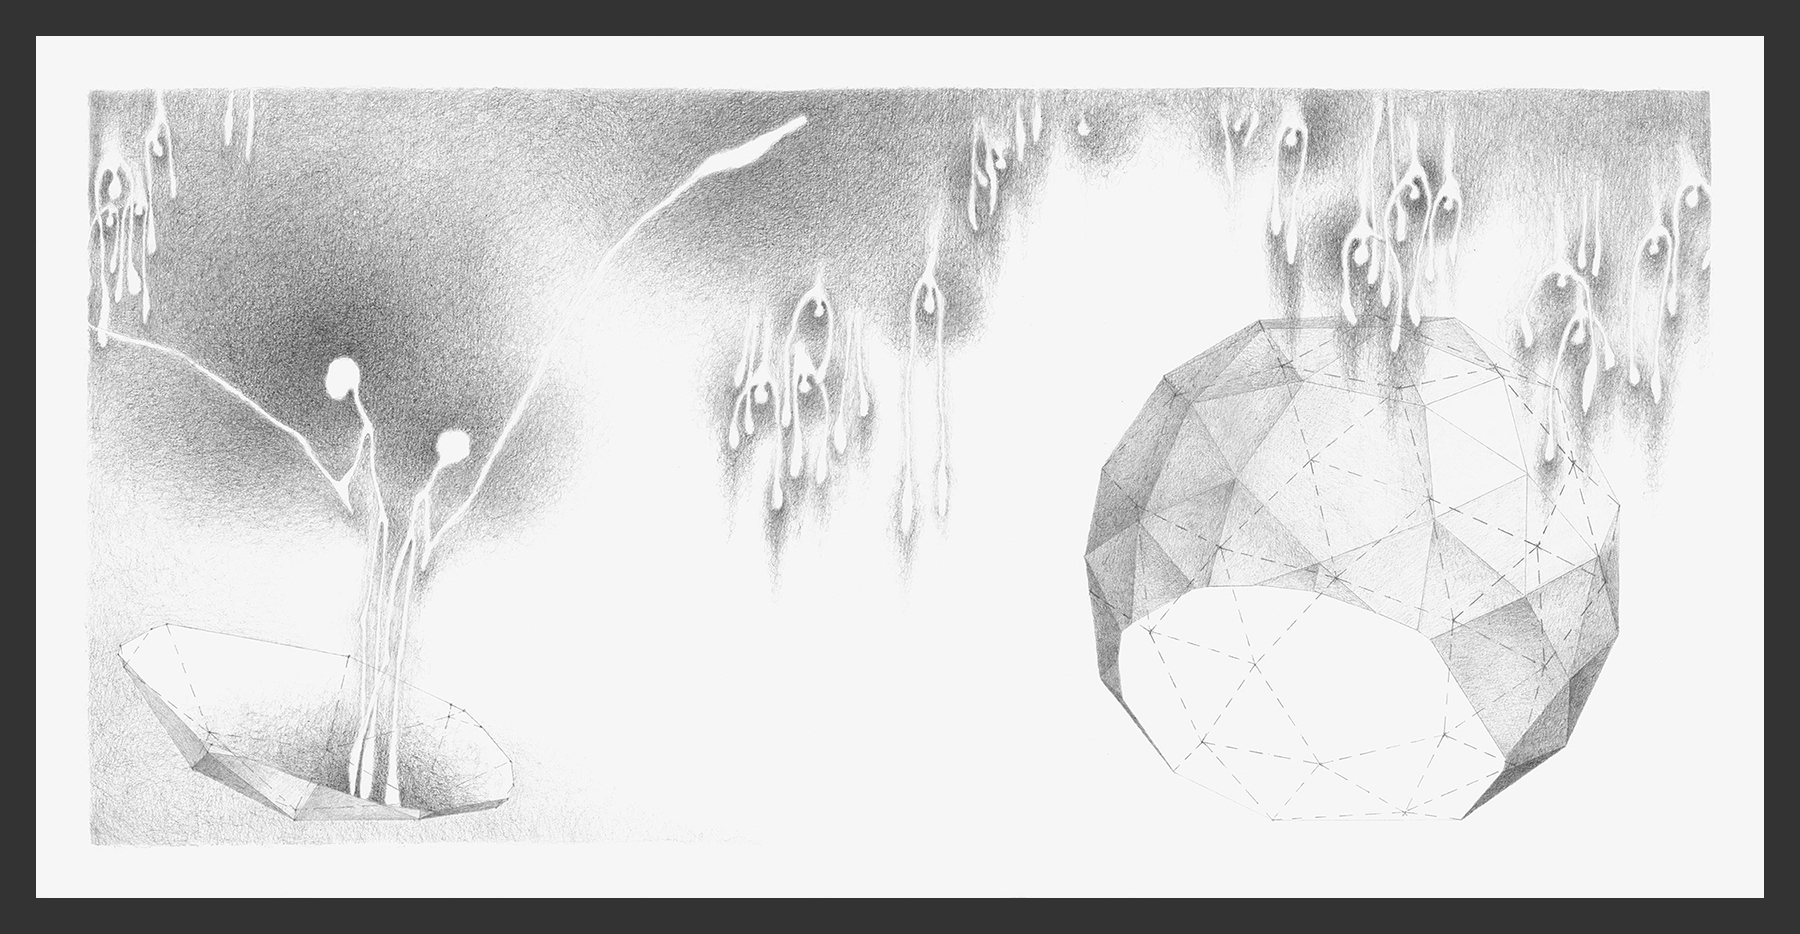 9-Website-Meditation-IX-Graphite-12x24-Astrid-Muller-Karger